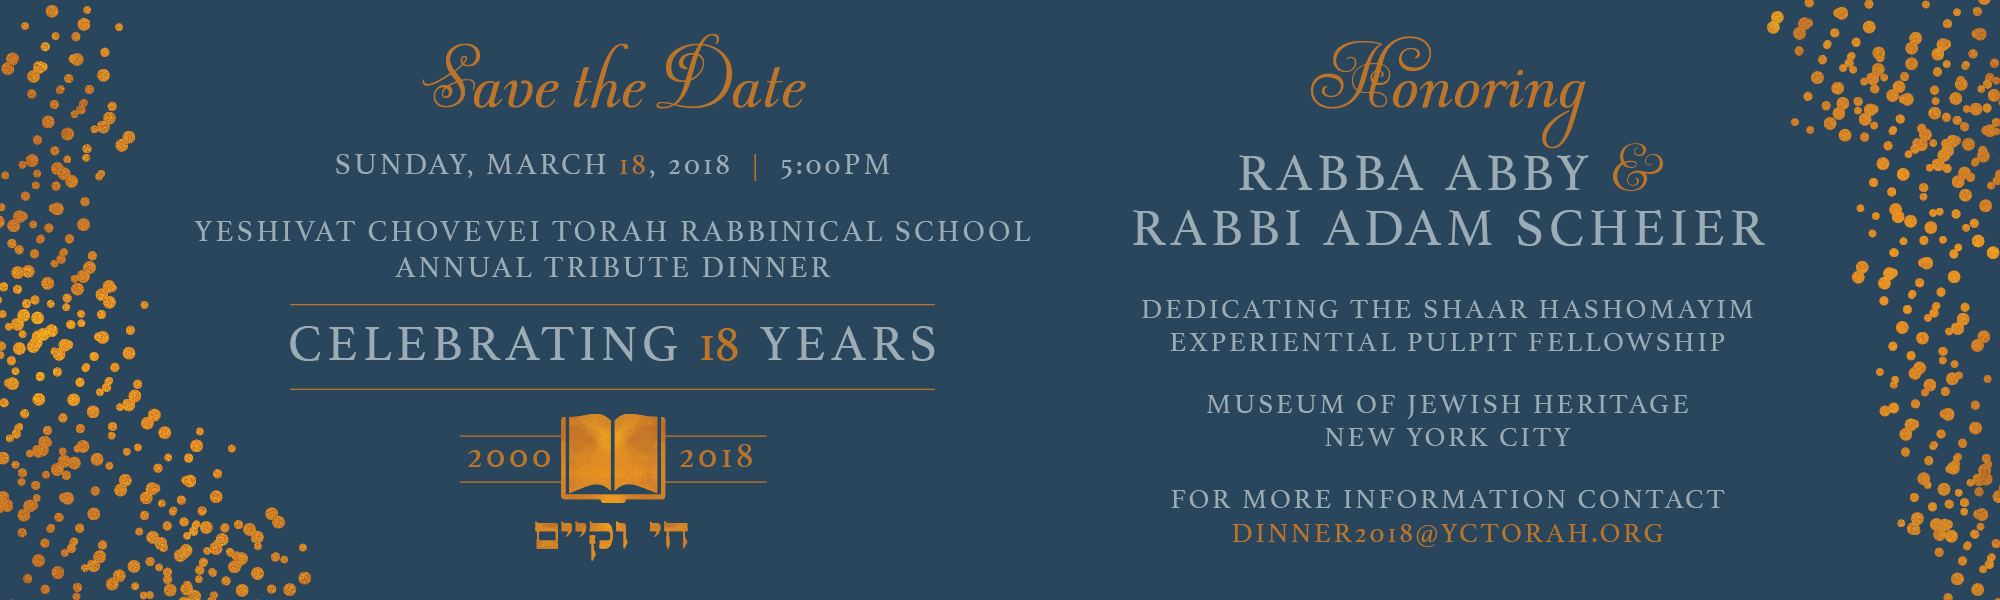 Annual Tribute Dinner - Yeshivat Chovevei Torah, Setting the standard in rabbinic education